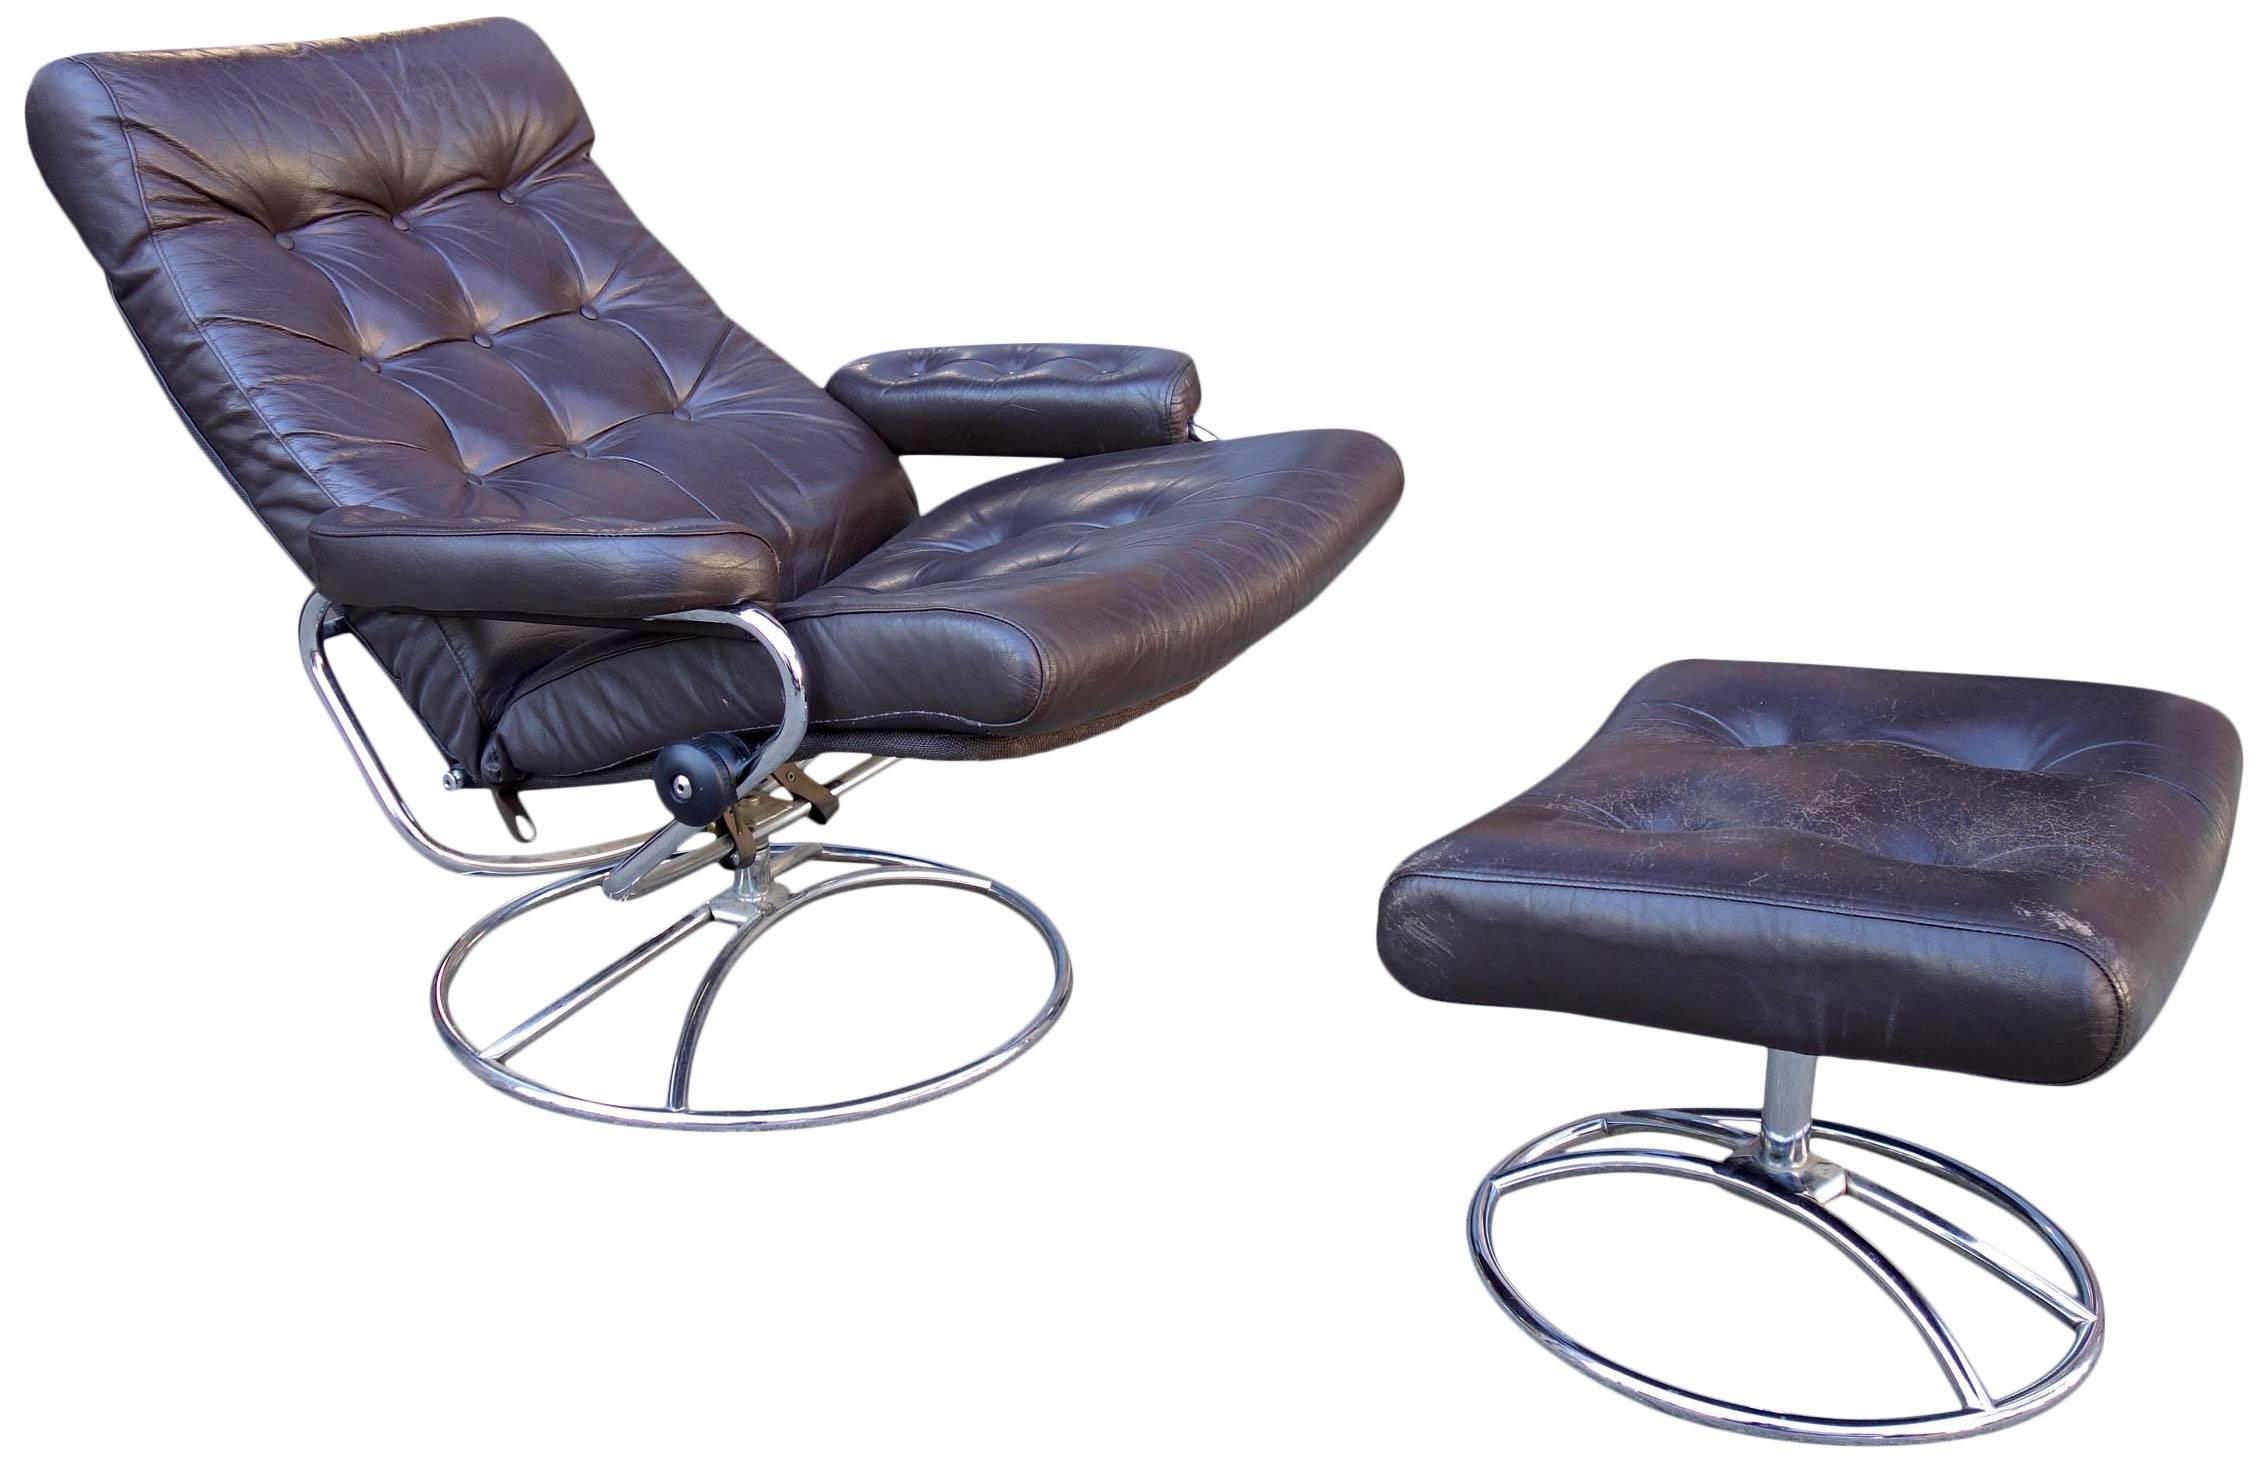 Scandinavian Modern Midcentury Reclining Stressless Lounge Chair And  Ottoman By Ekornes For Sale